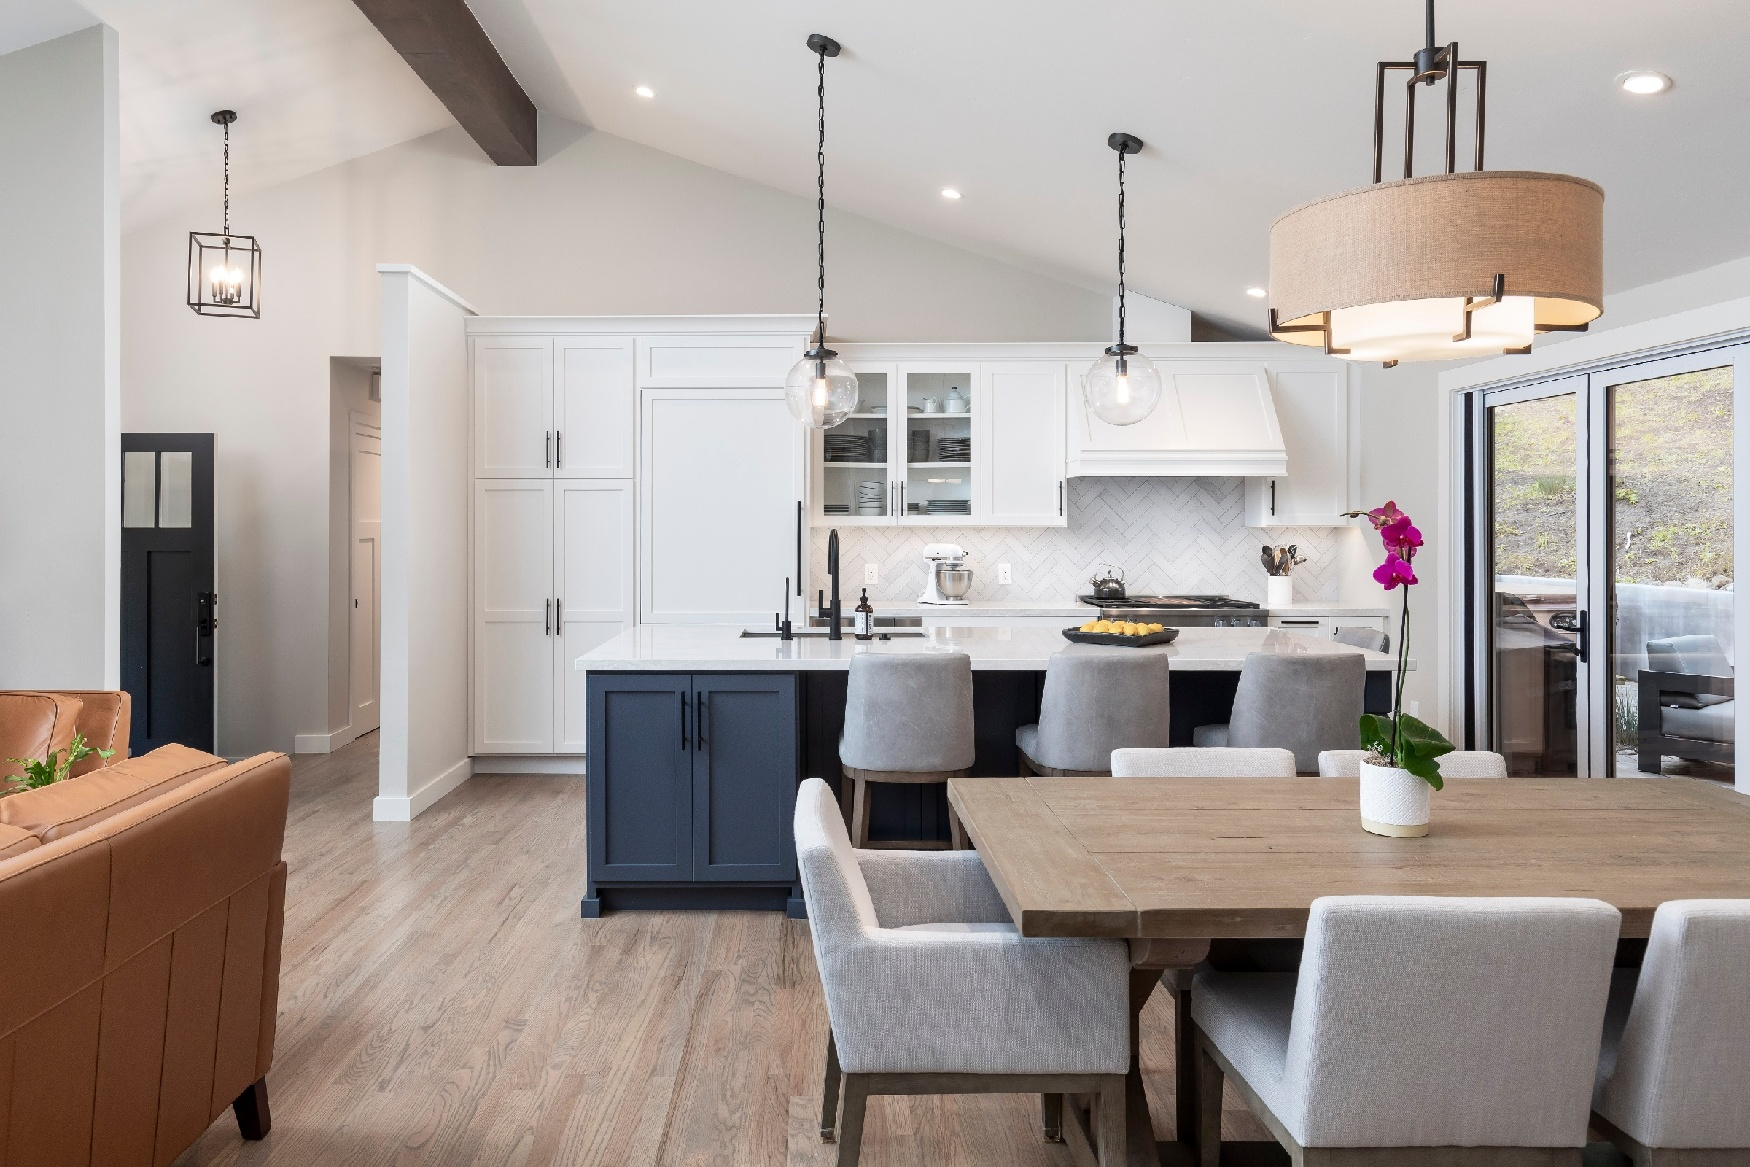 Inviting kitchen and dining area with tan hanging lights and black countertops